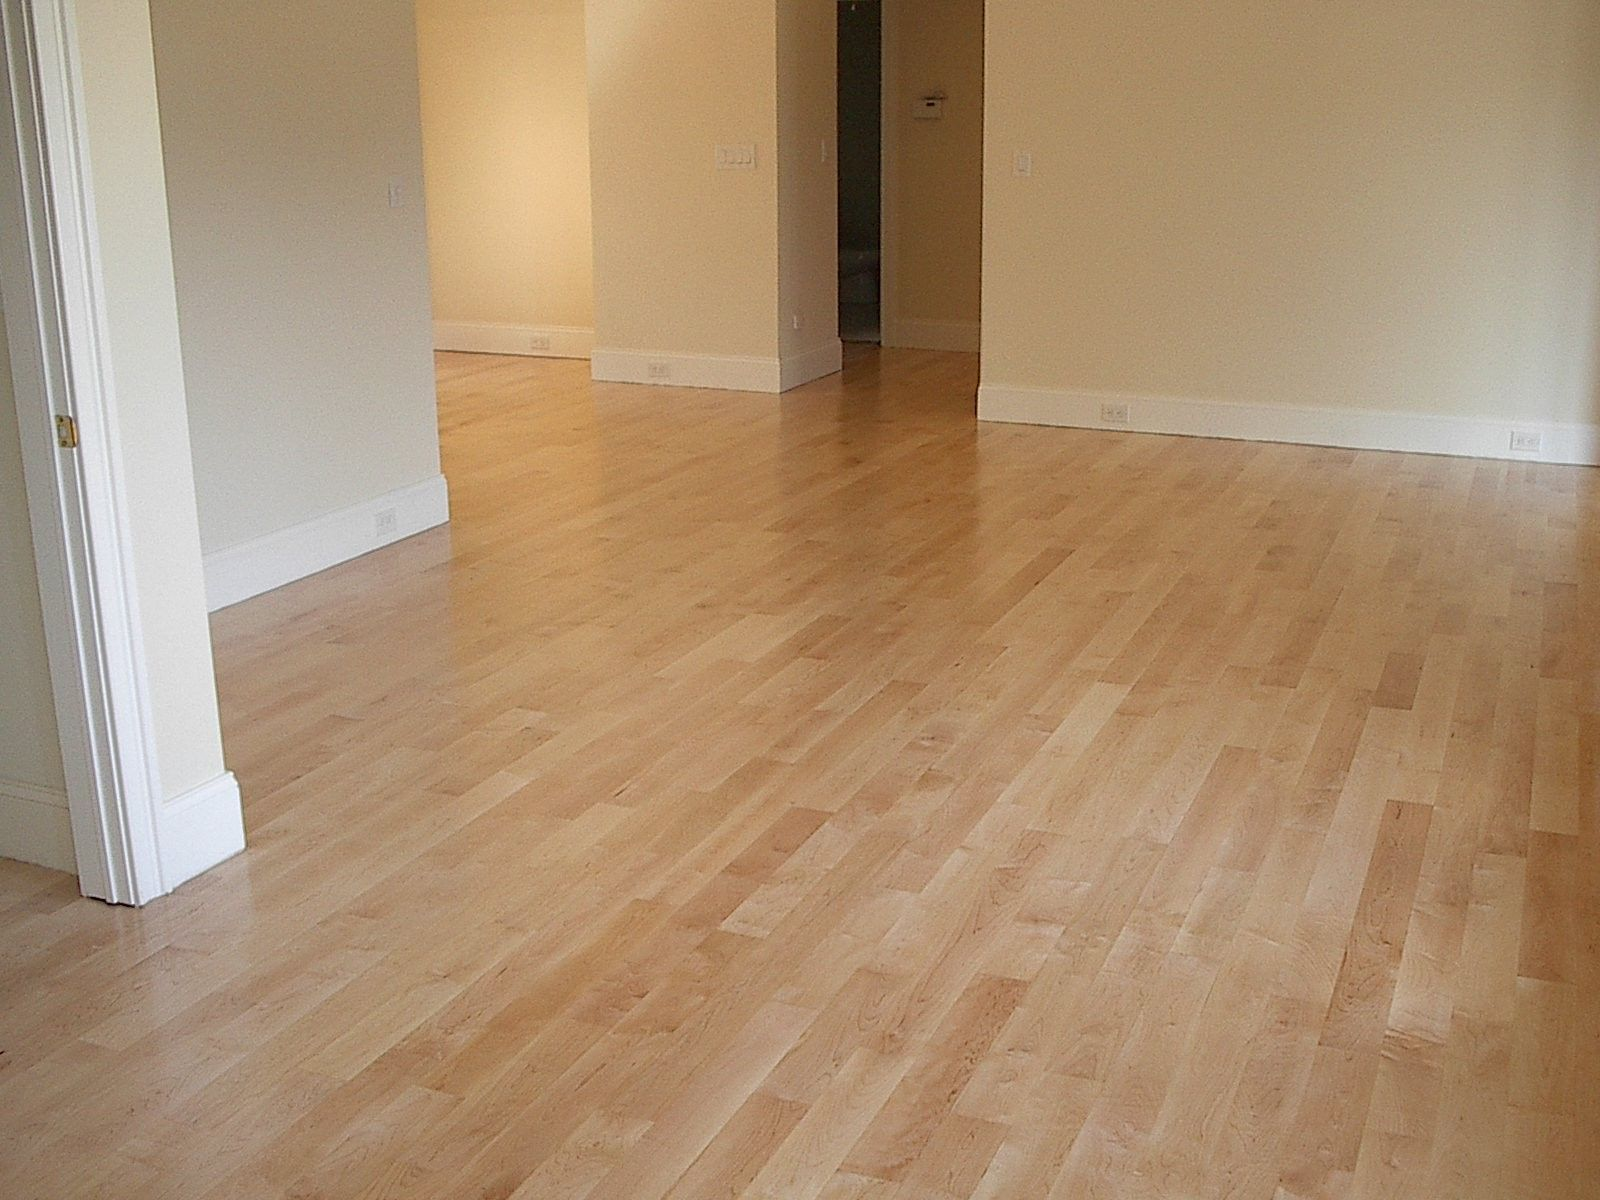 Accessories & Cost Of Wood Laminate